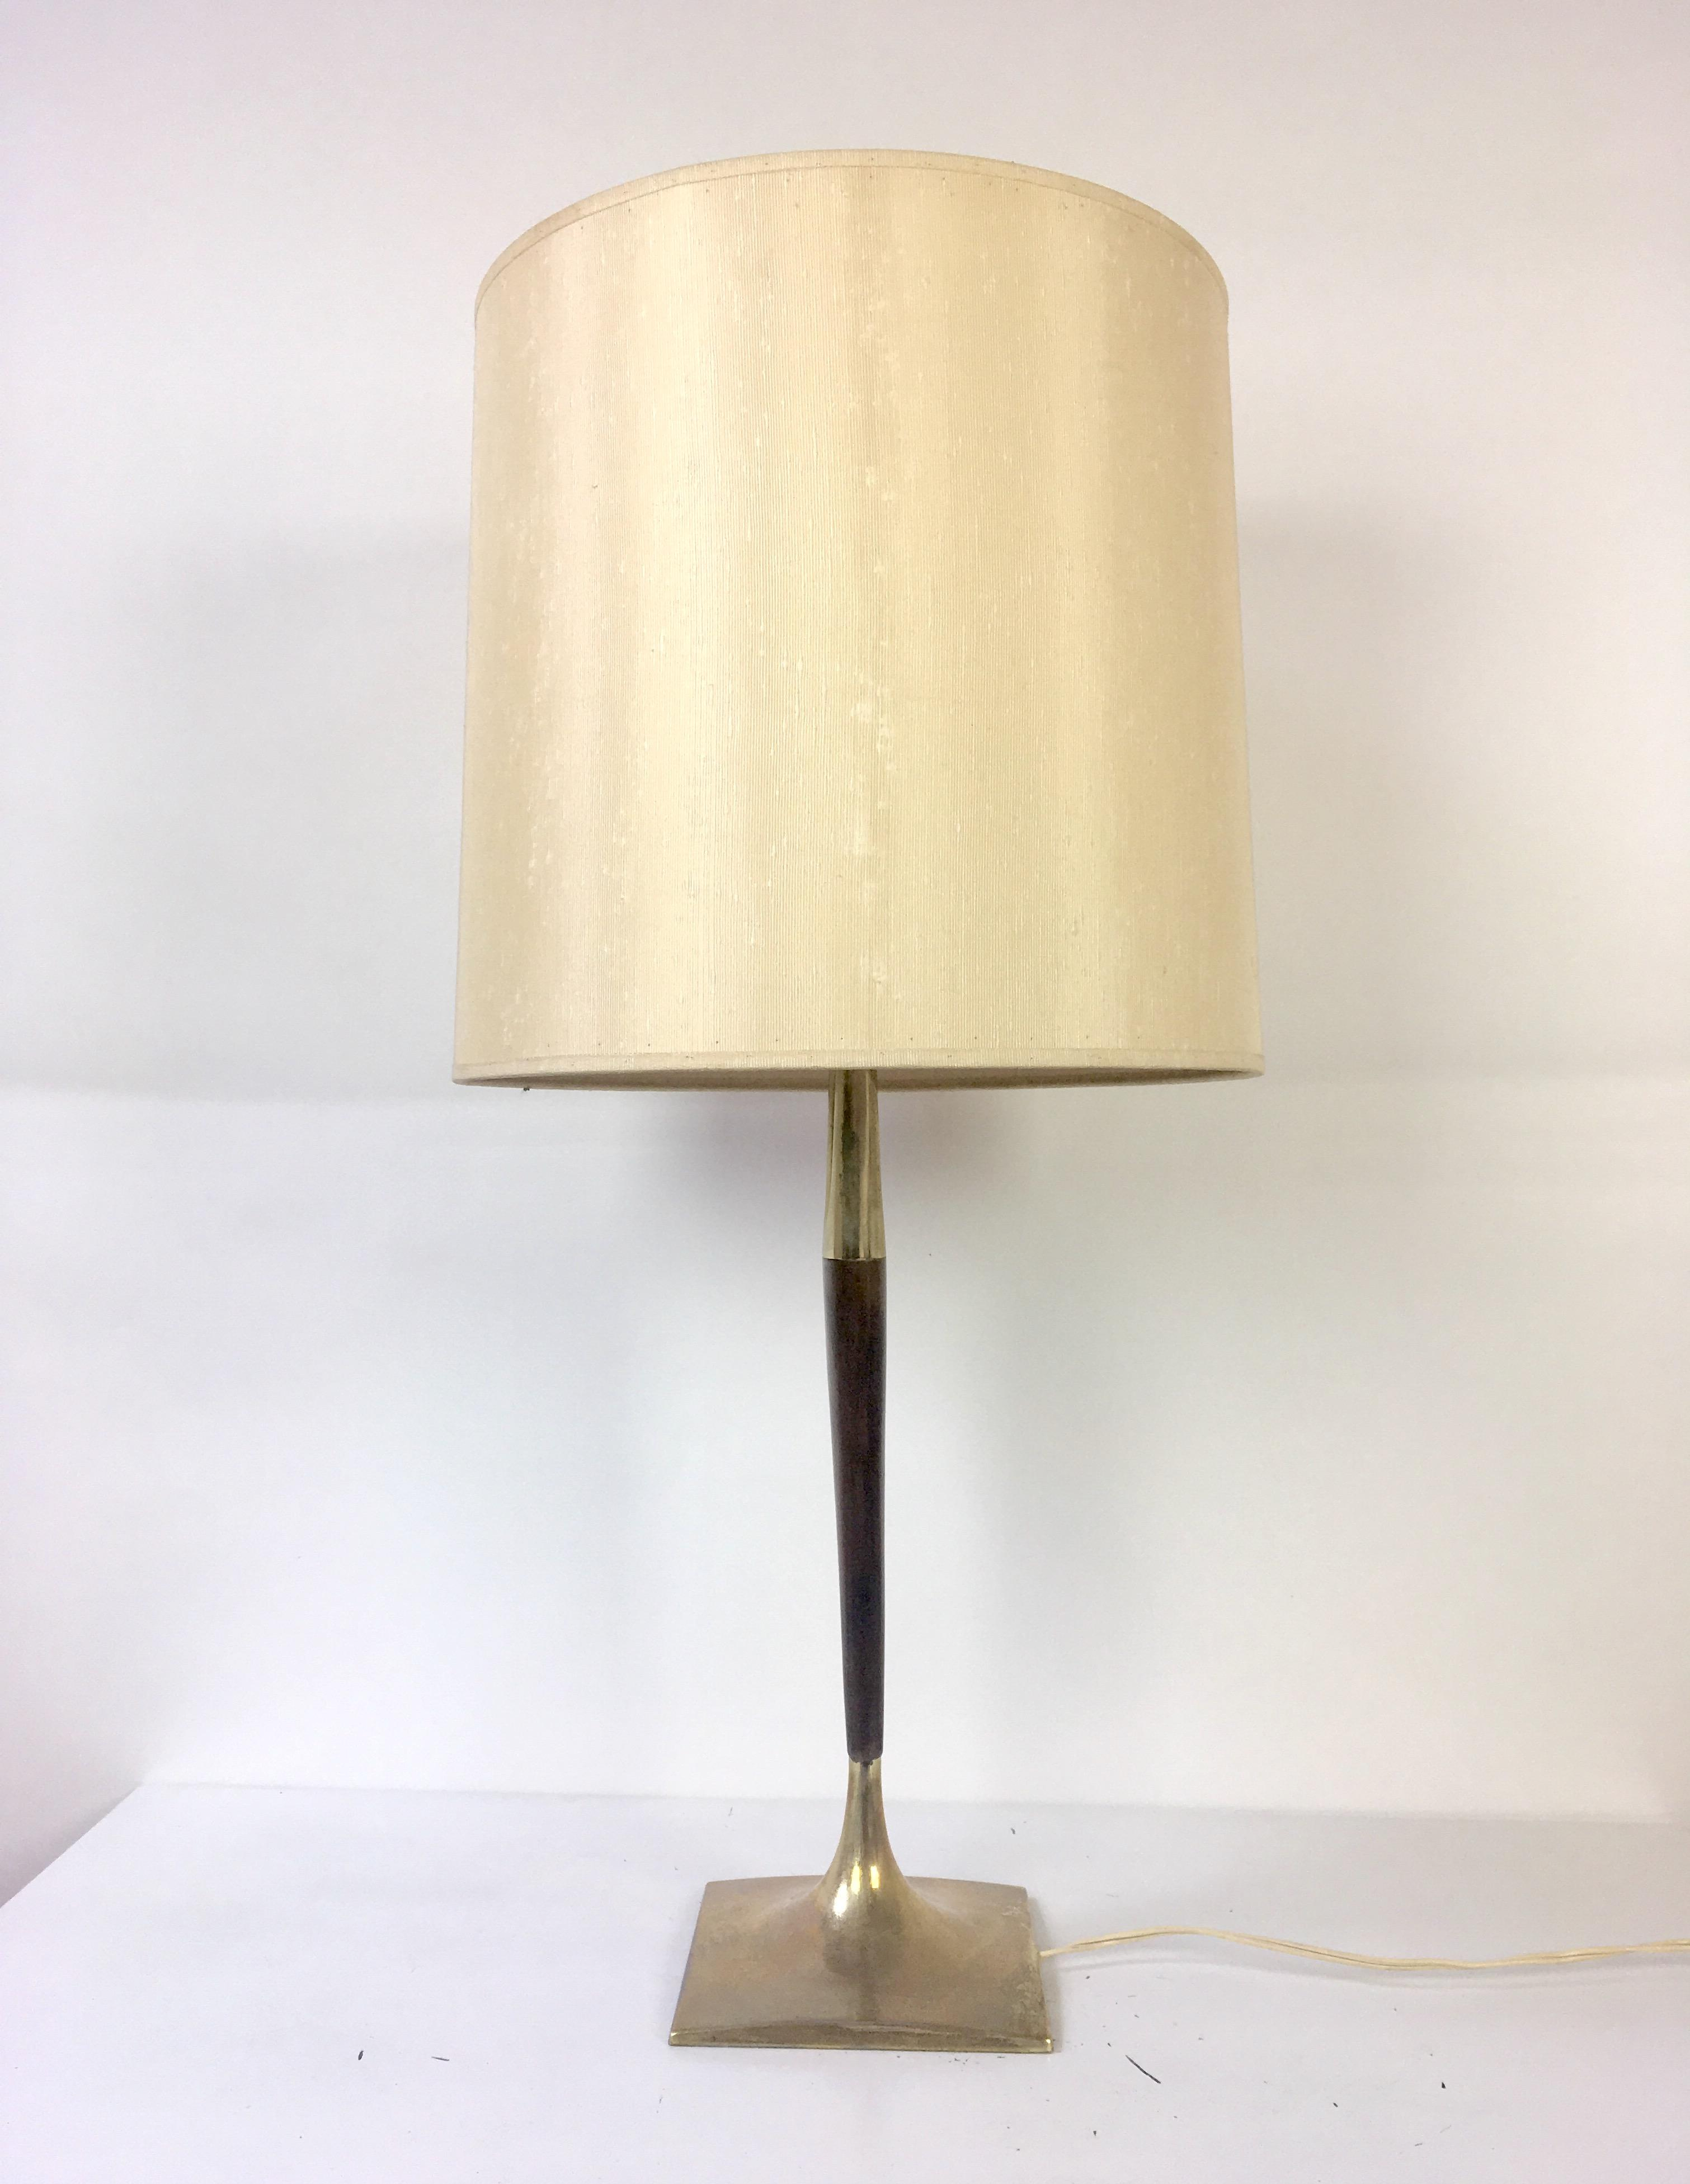 Exceptional Gerald Thurston Mid Century Wishbone Table Lamp For Laurel Lamp Co.   Image  4